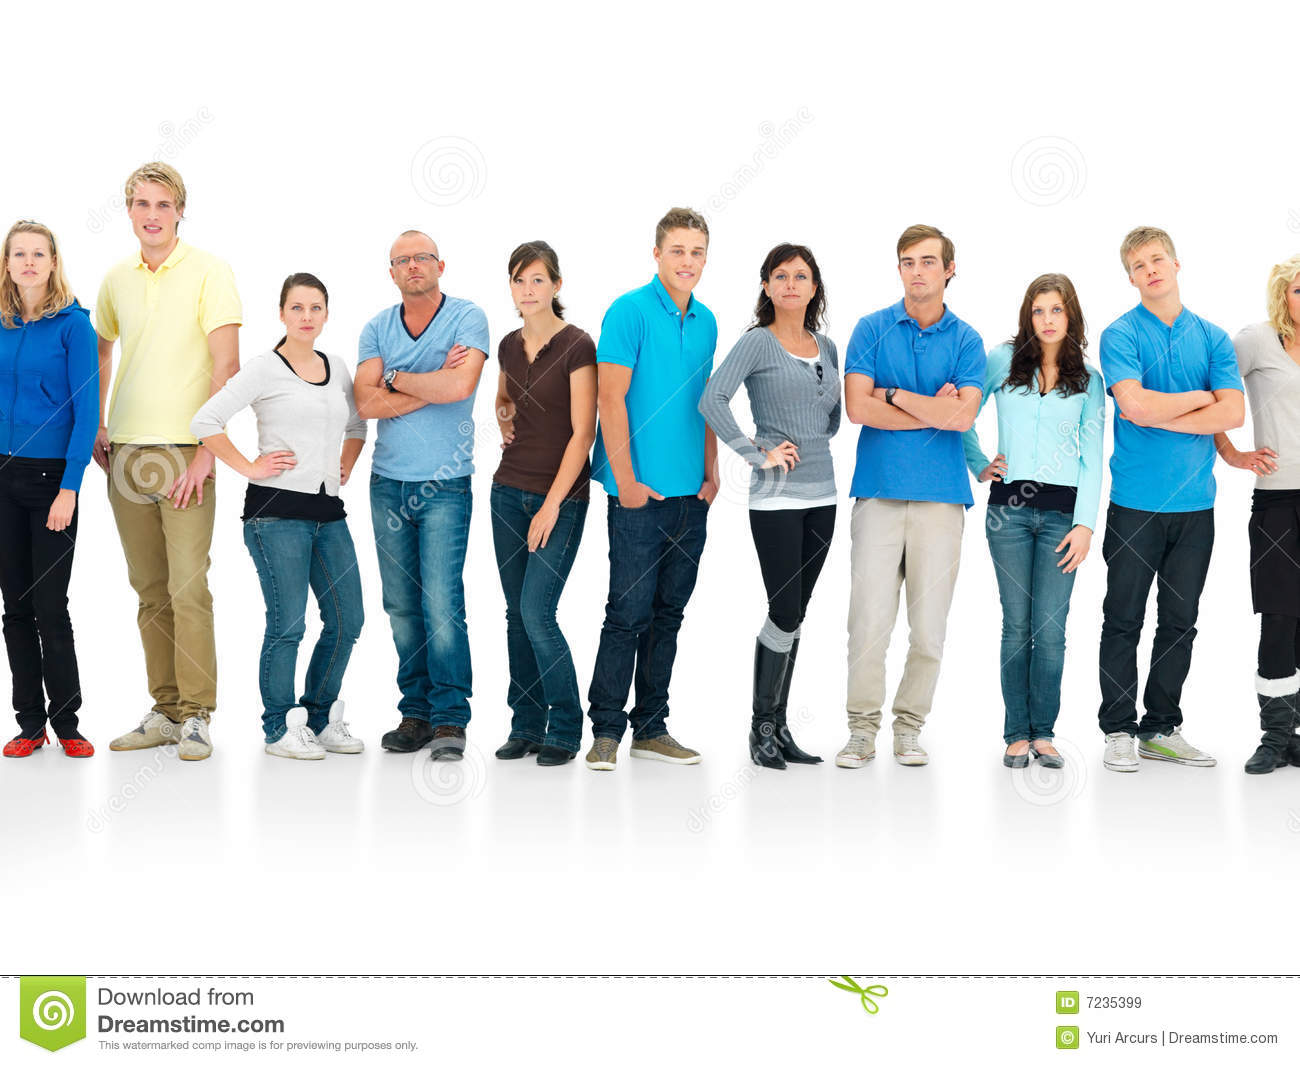 Royalty Free Stock Images: Patience - People standing in a queue ...